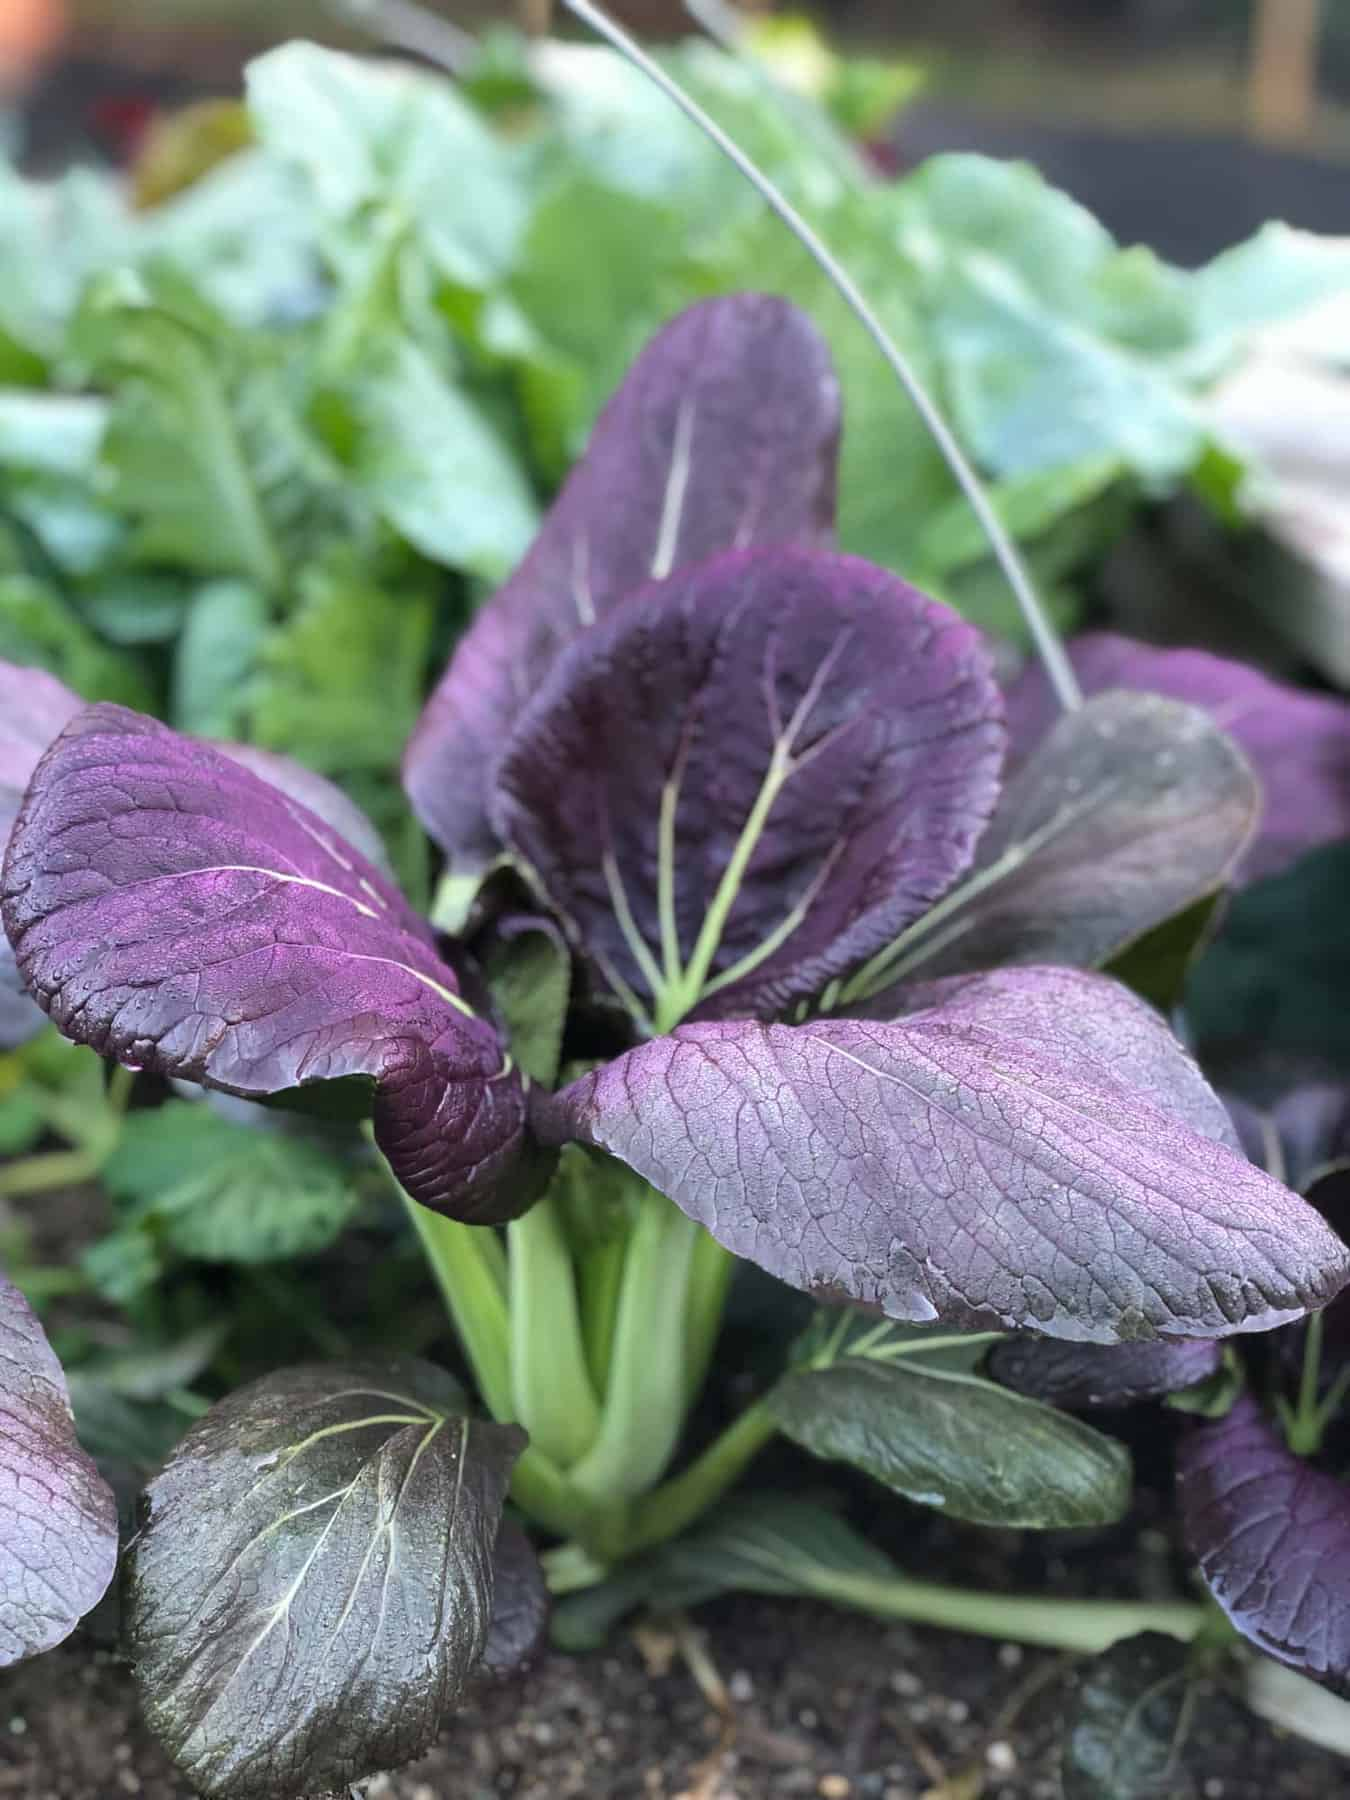 Close up of a purple and green pac choi plant.